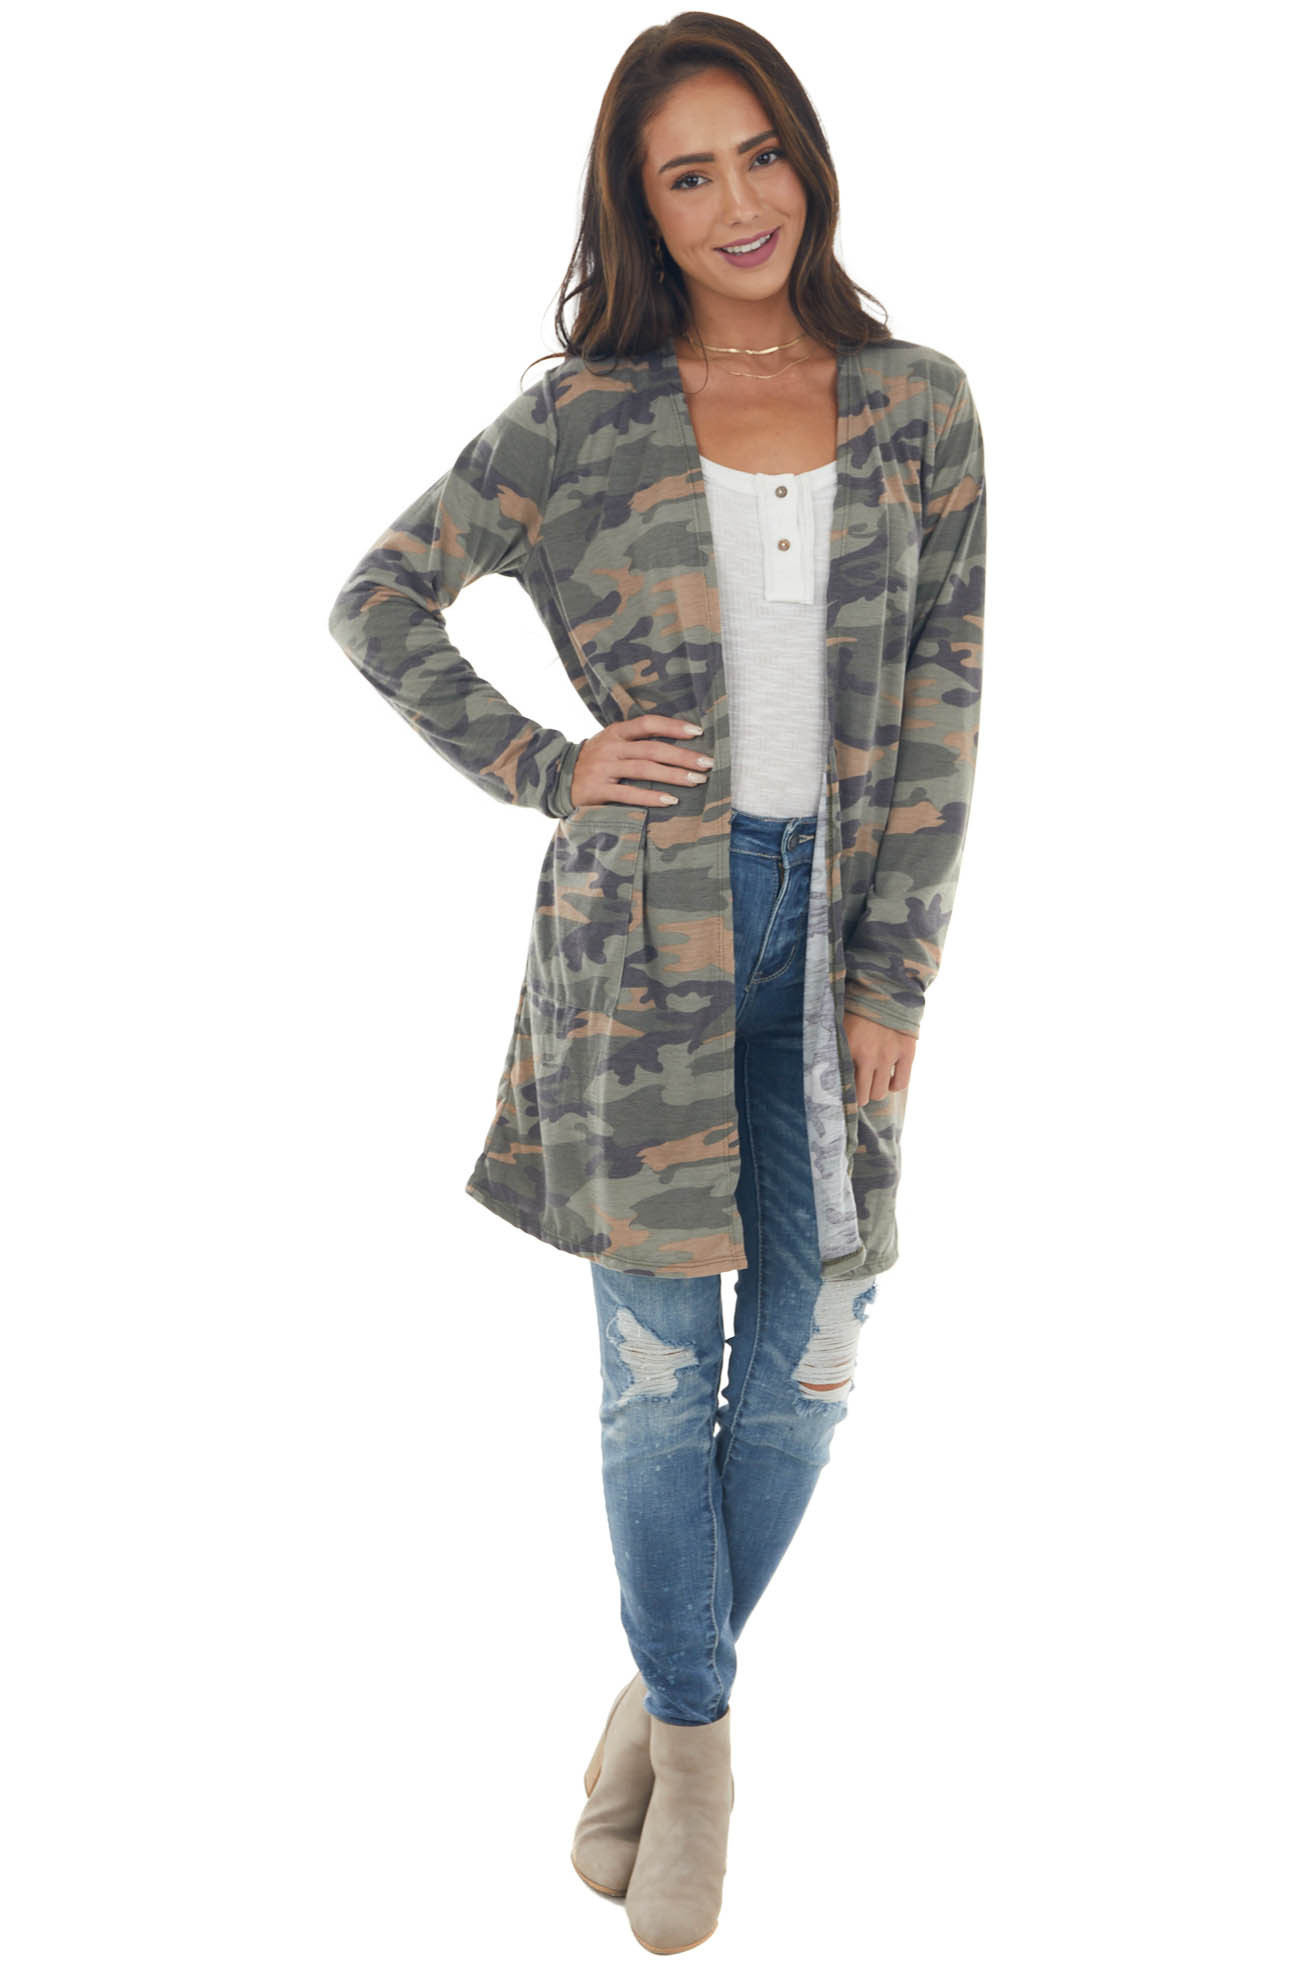 Olive and Desert Sand Camo Open Front Cardigan with Pockets